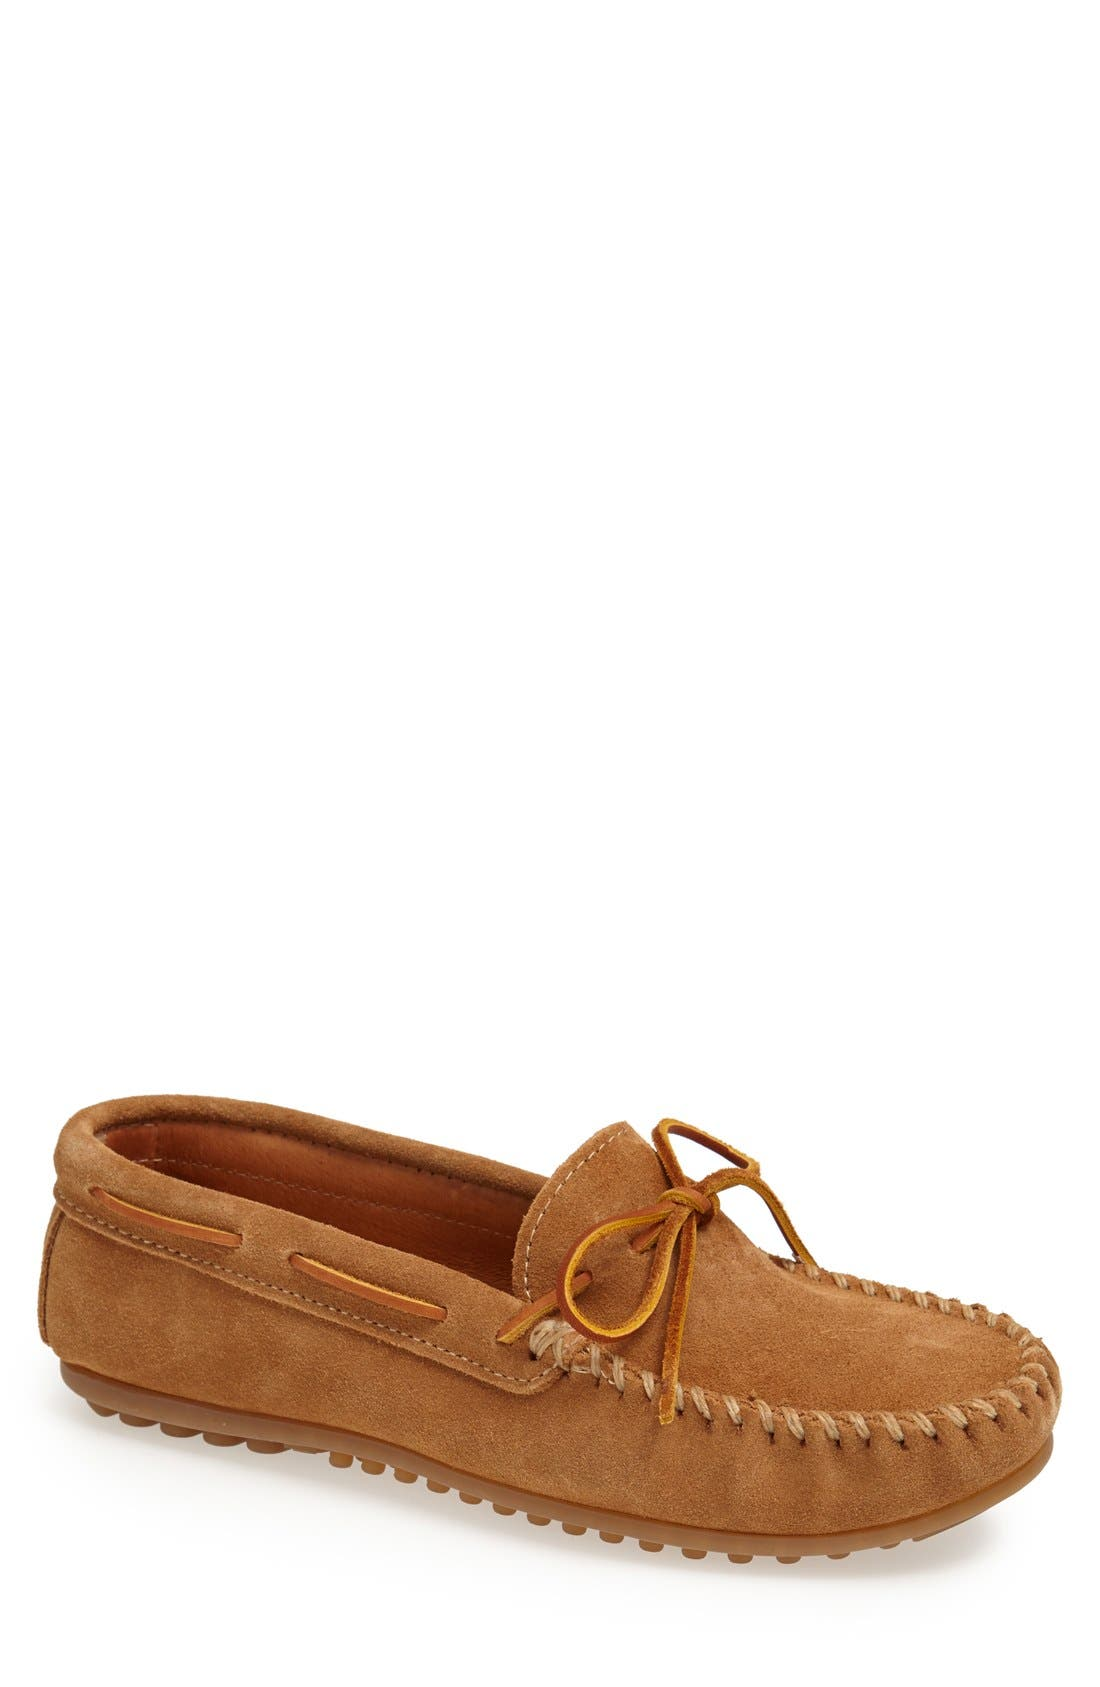 Suede Driving Shoe,                         Main,                         color, Taupe